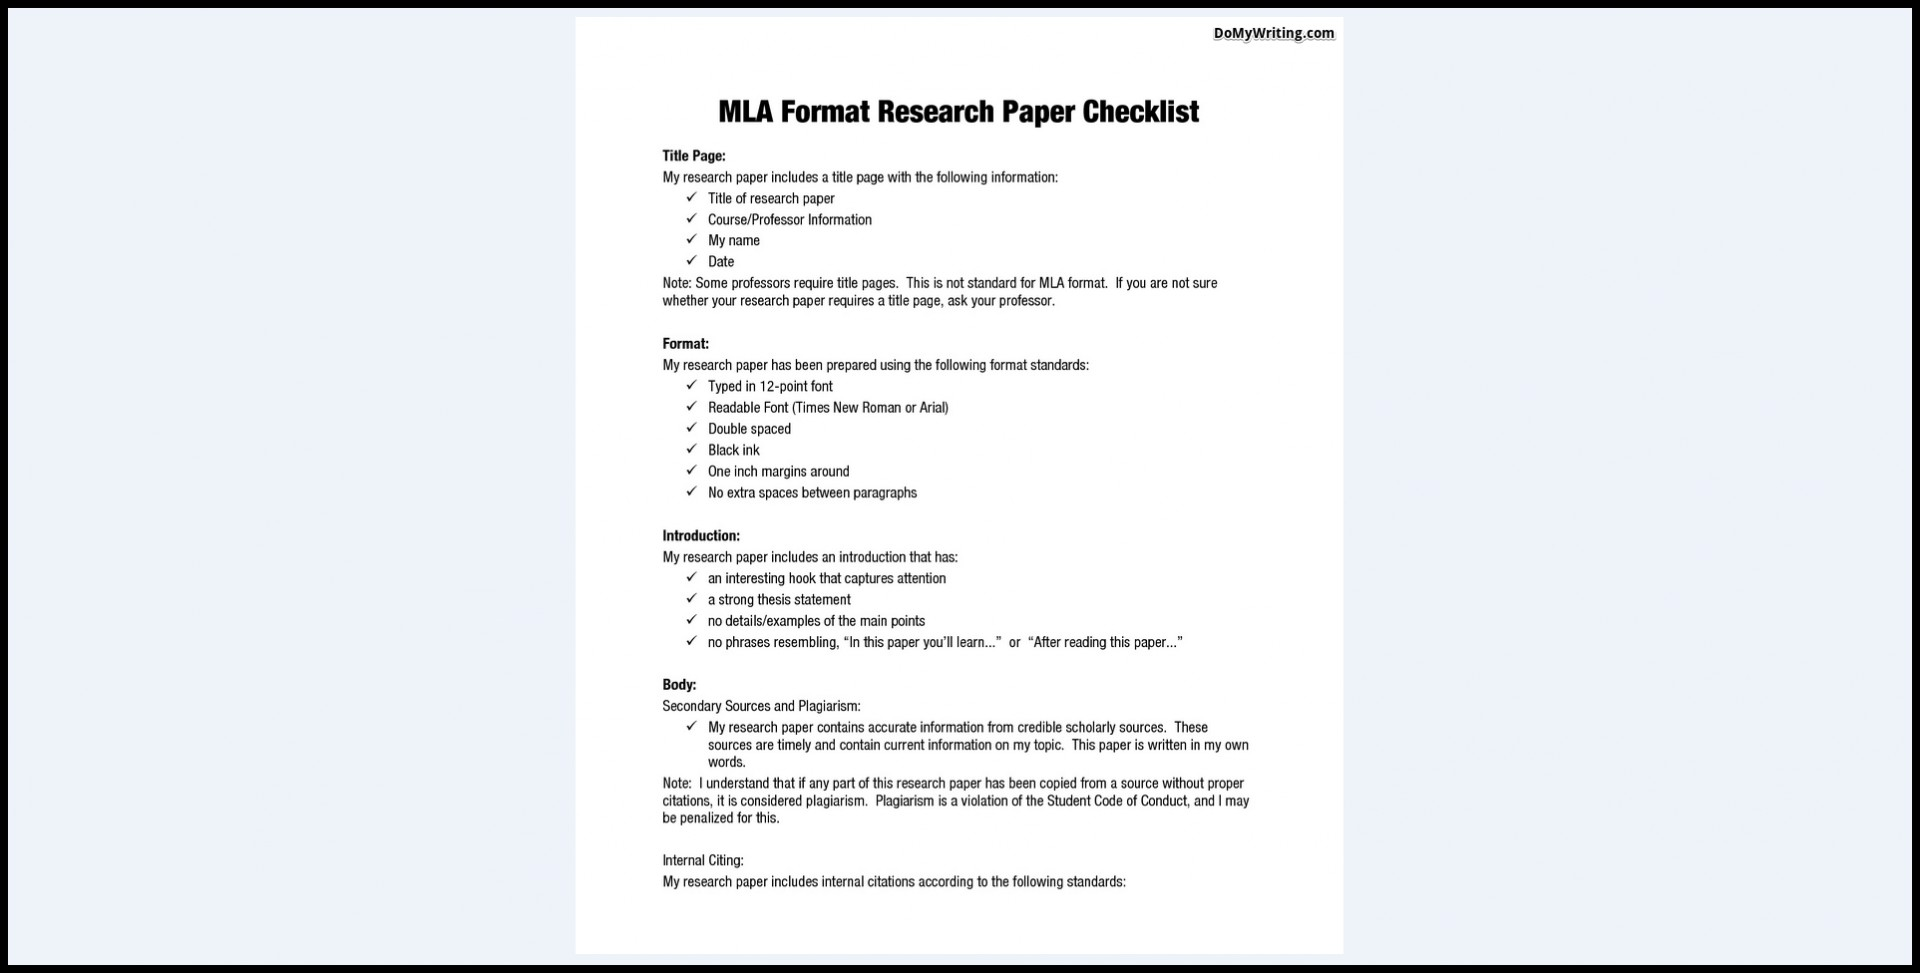 007 Research Paper Mla Format In Excellent Style Outline Sample Title Page Writing A Using 1920